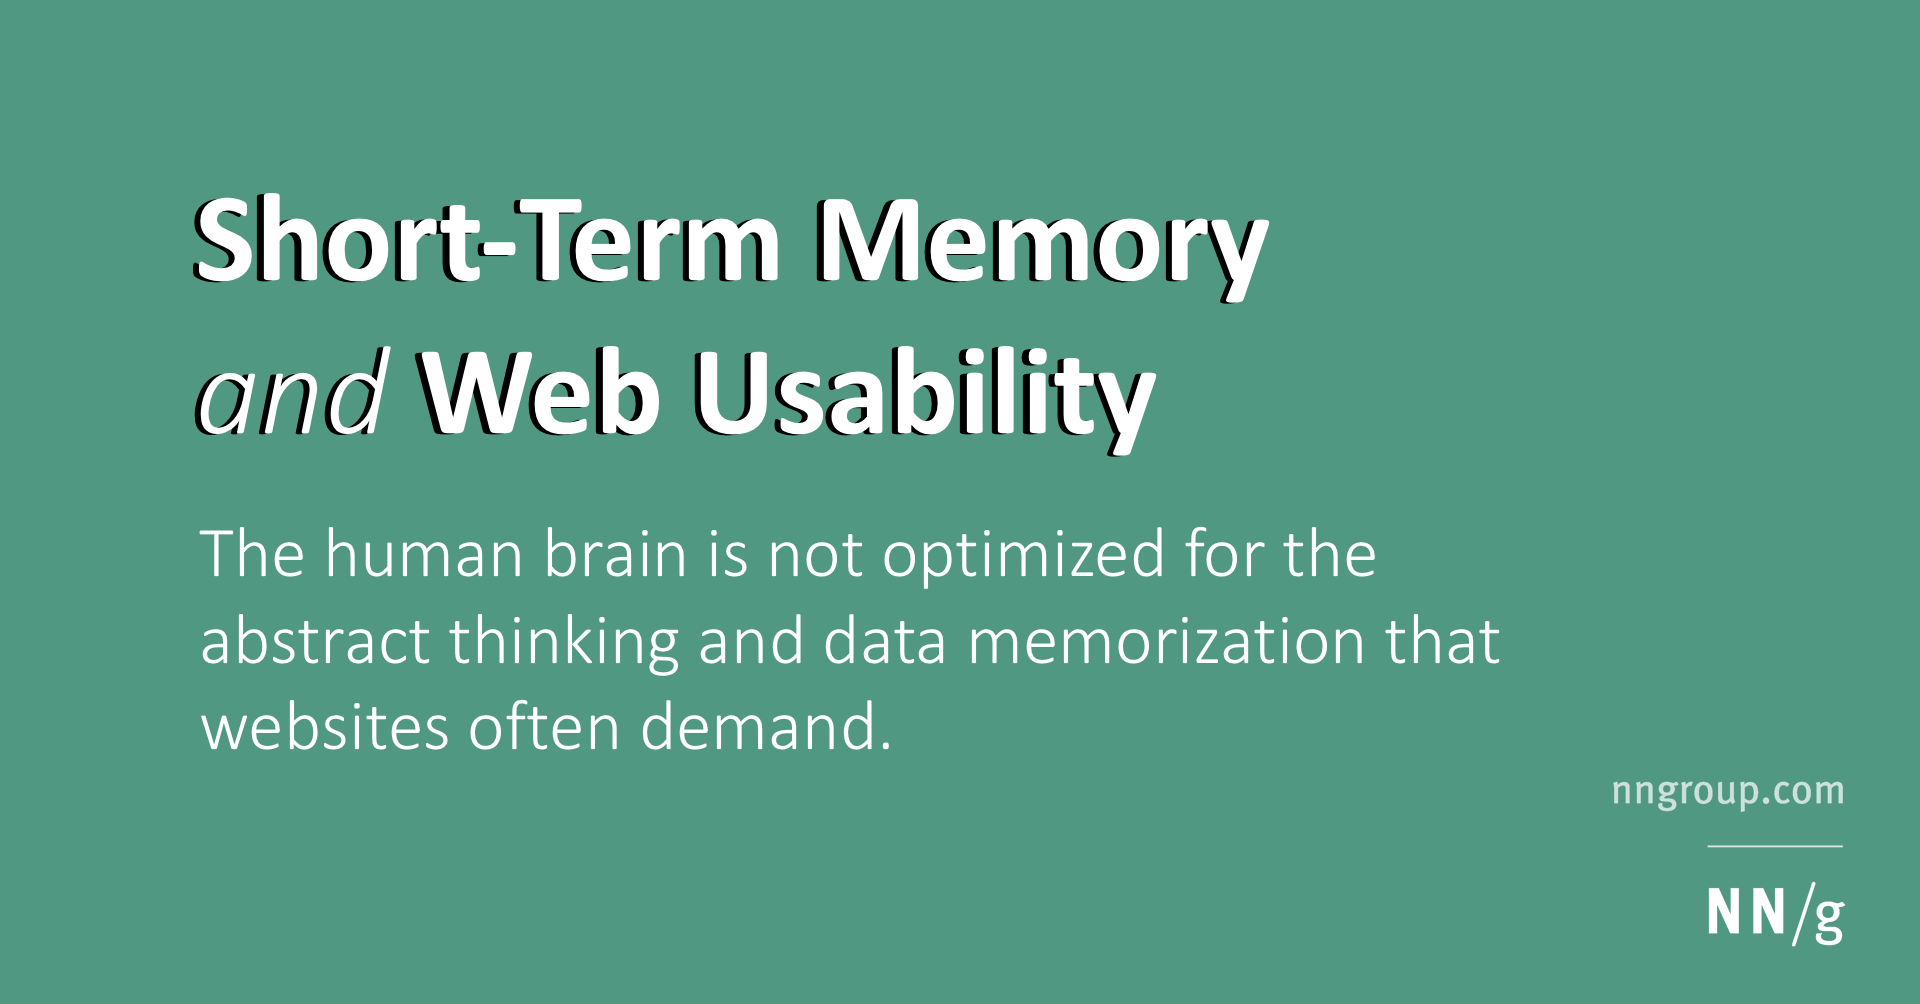 evaluating the short term memory This page includes the following topics and synonyms: memory evaluation, memory exam, immediate memory, short term memory, long term memory.